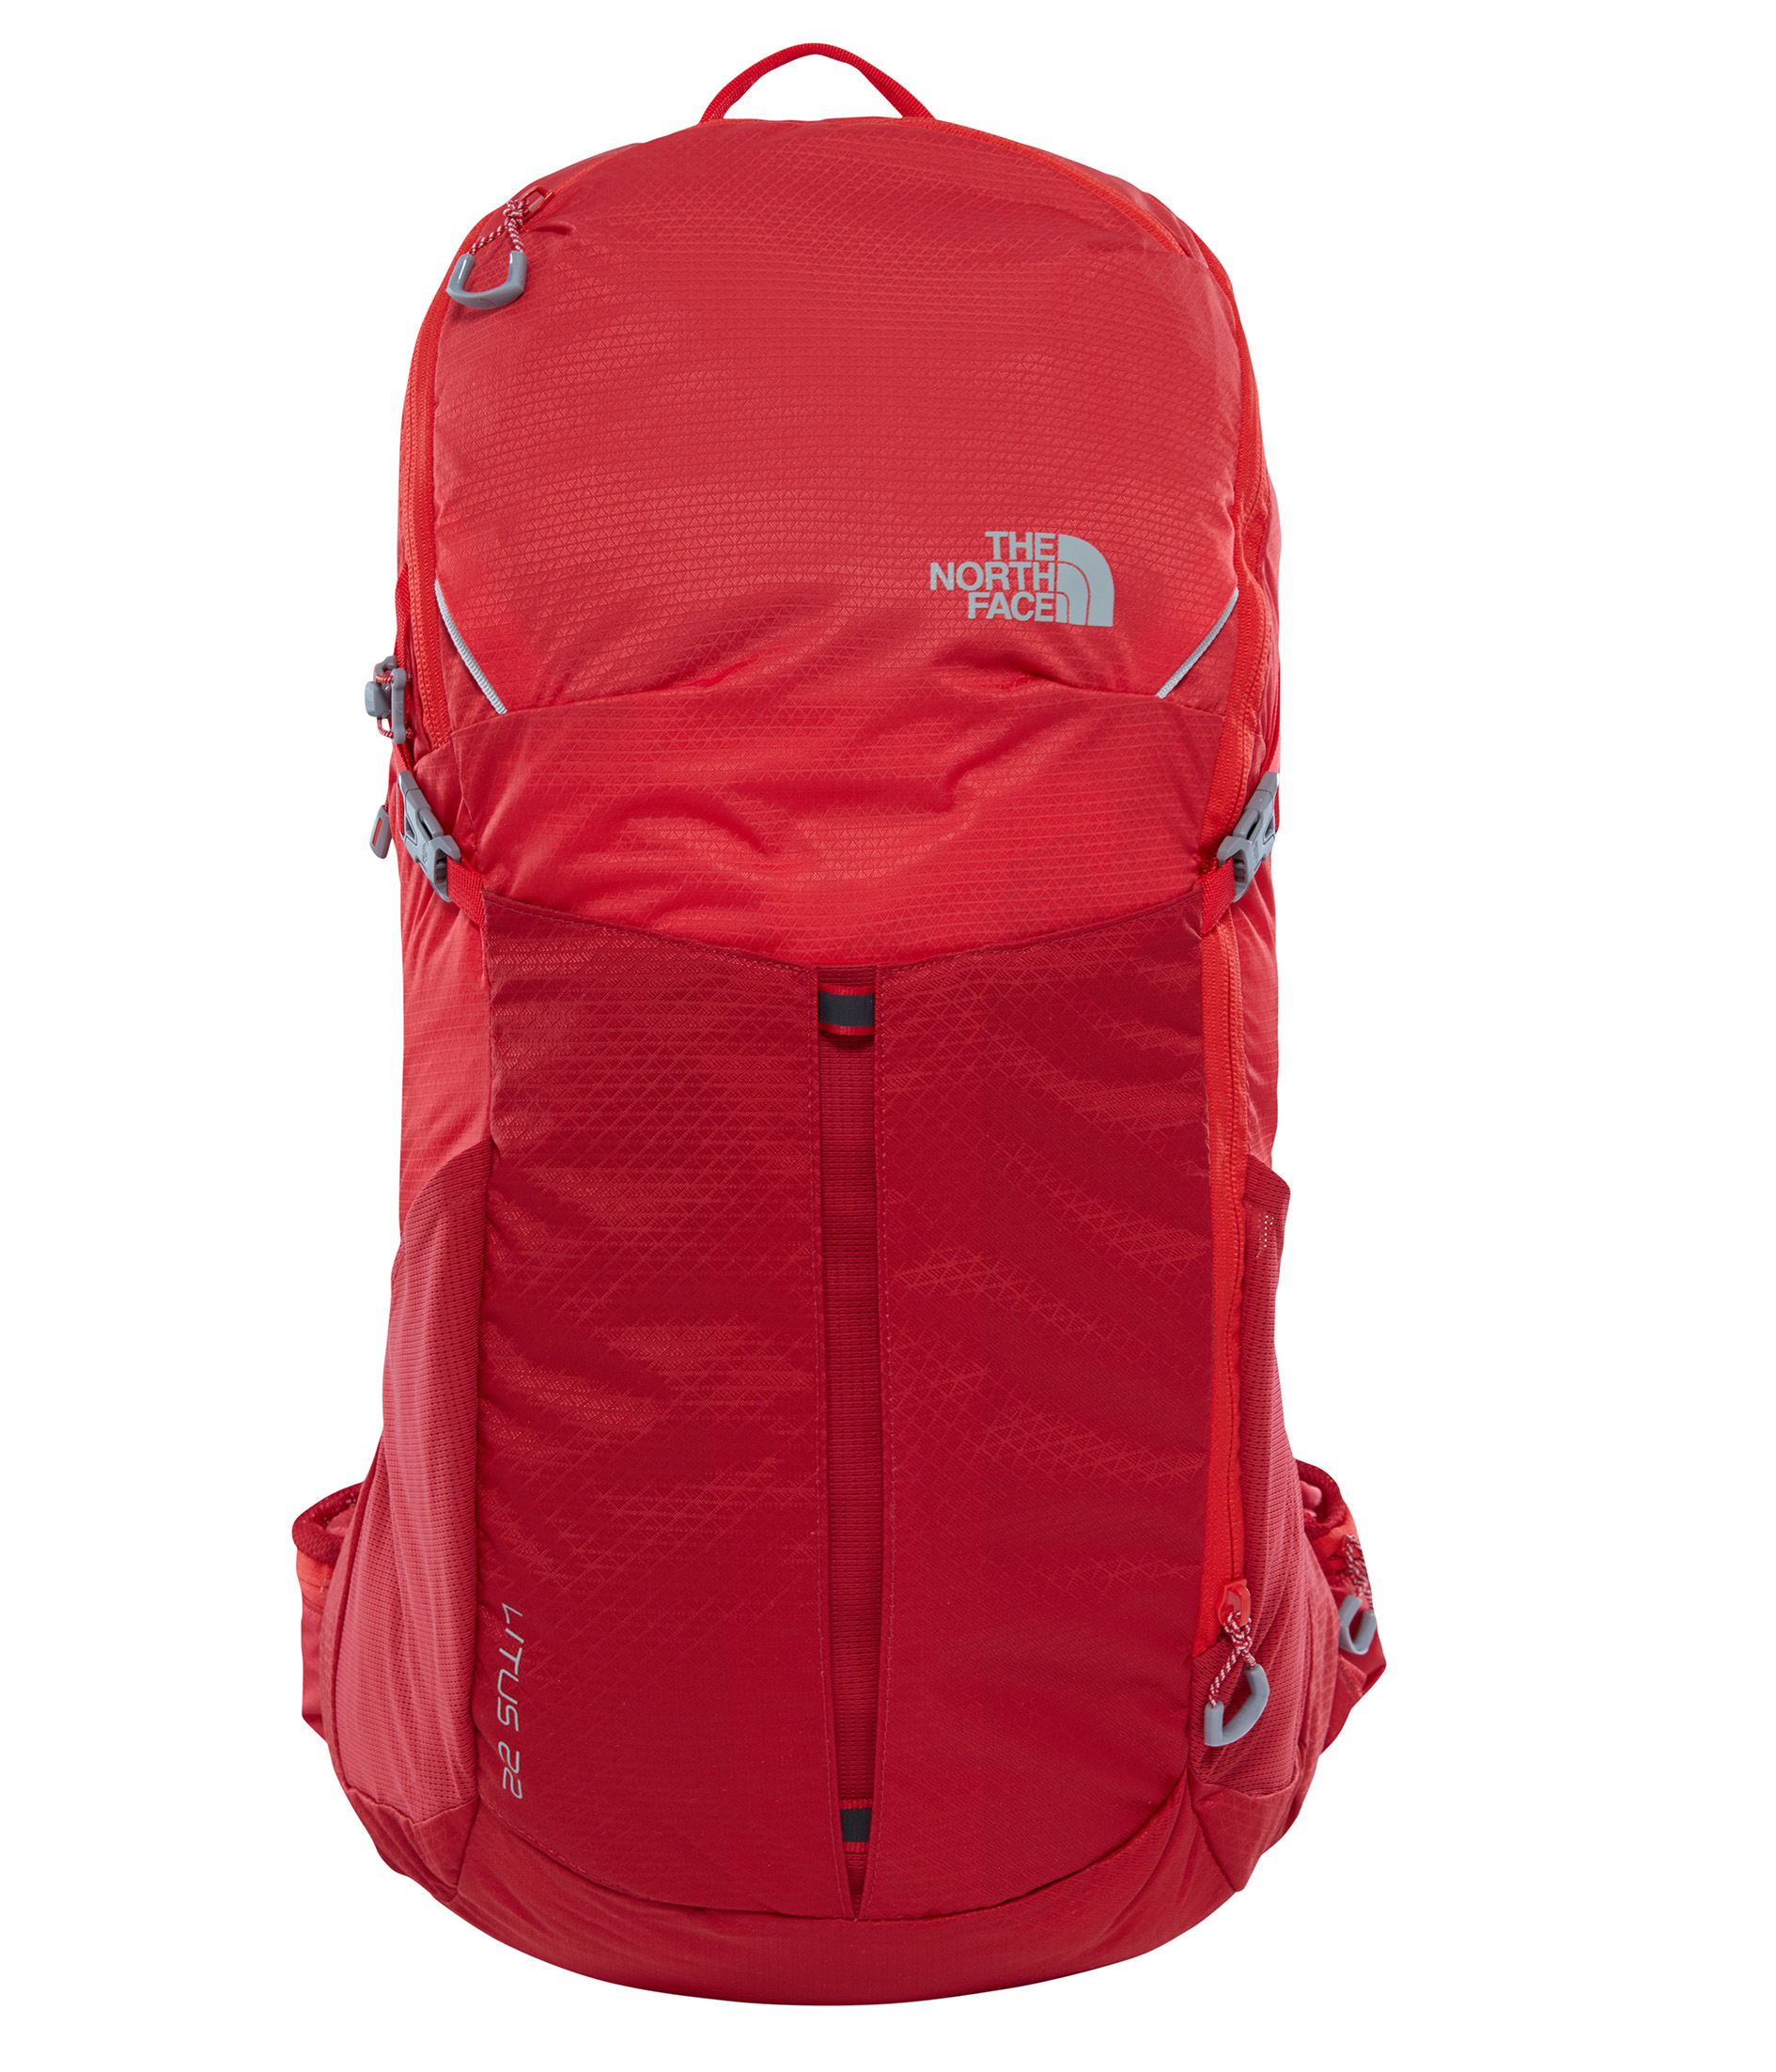 9e1be8fa624 Раница LITUS 22-RC - The North Face